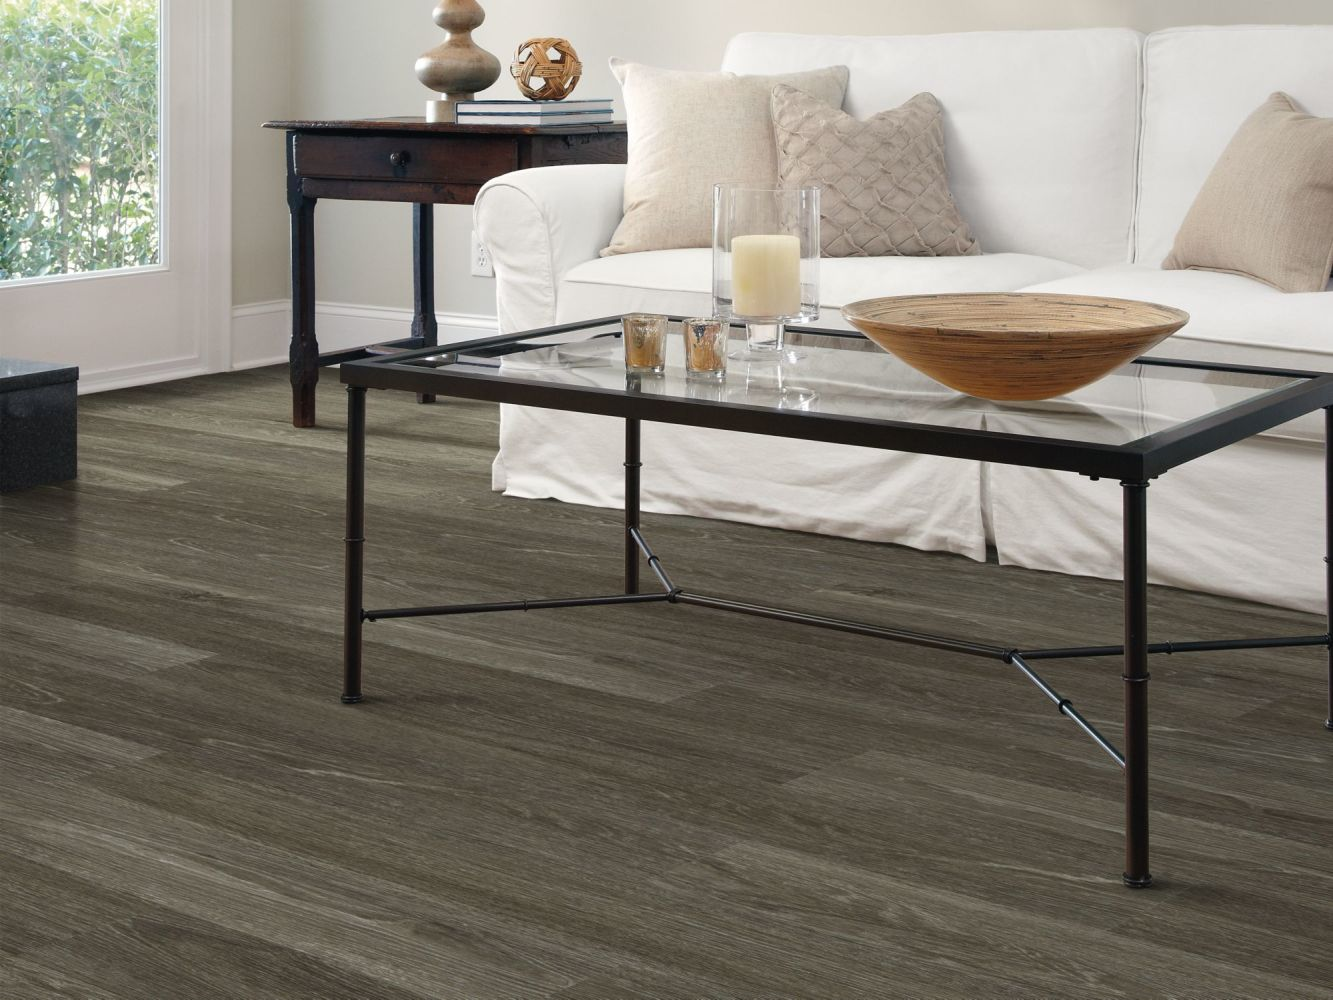 Shaw Floors 5th And Main Symbiotic 20 Carbon 00564_5M303